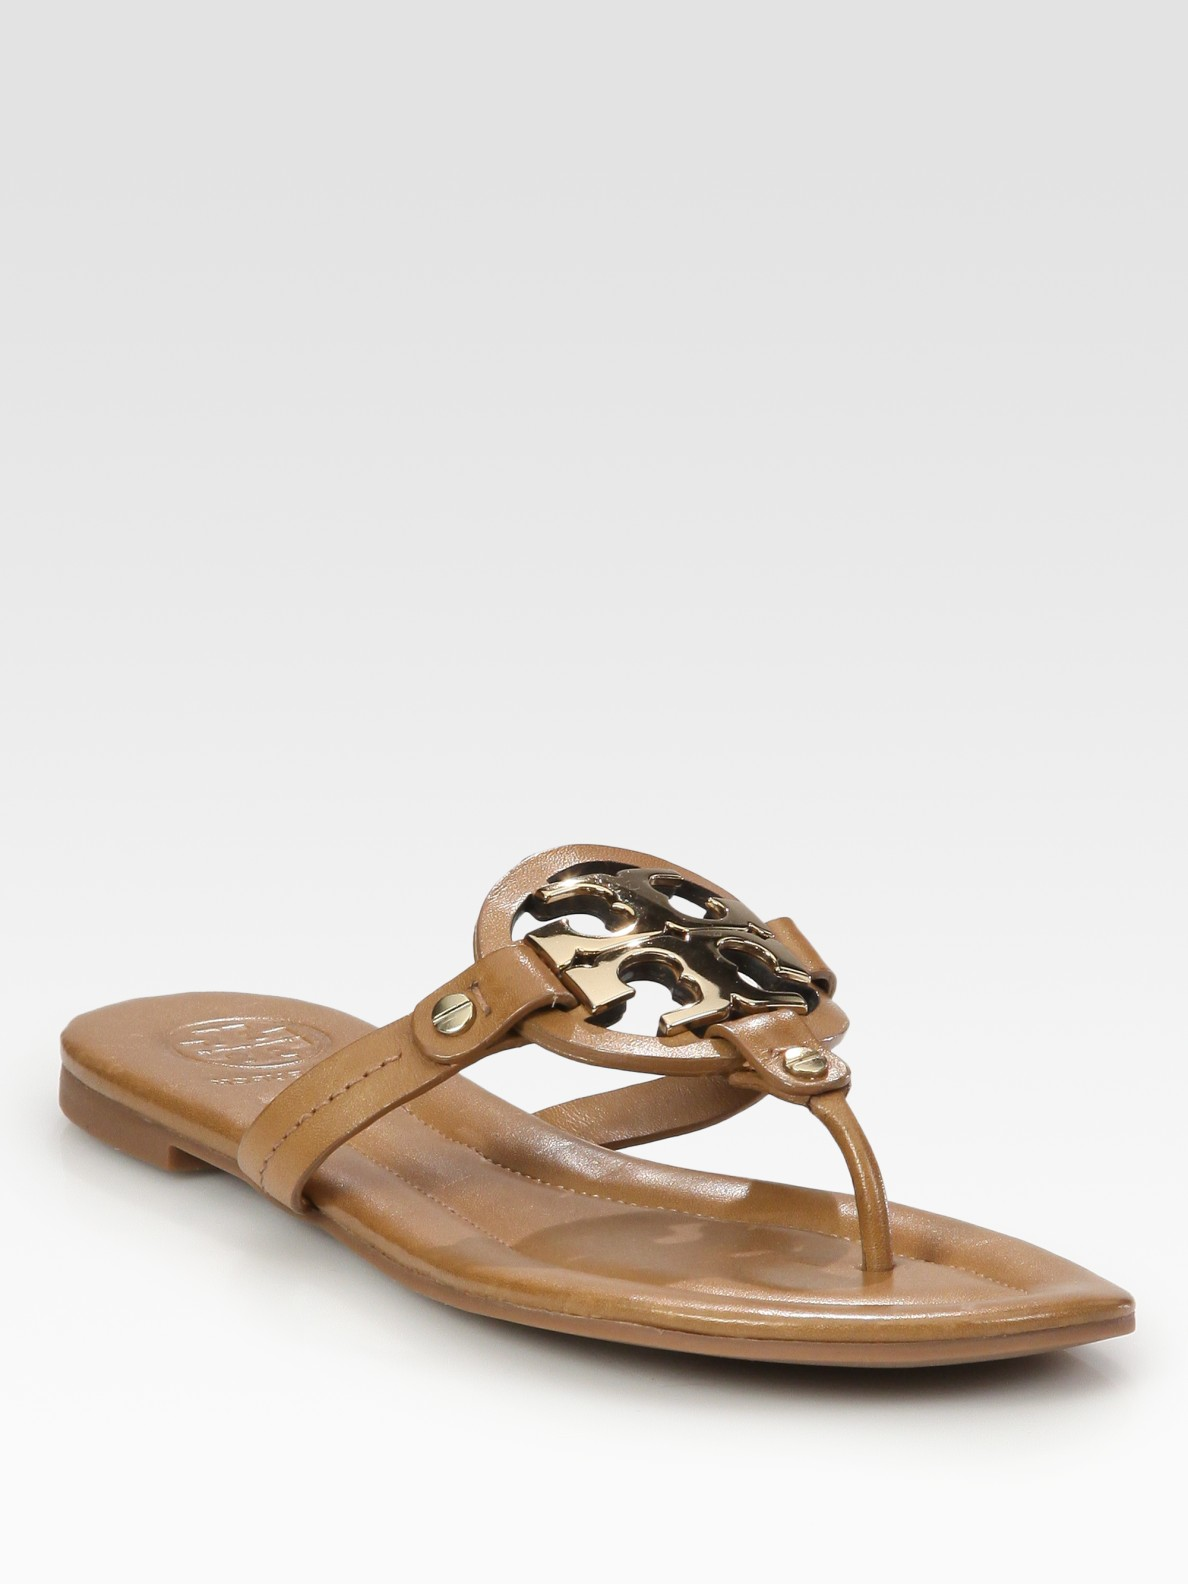 Lyst Tory Burch Miller Leather Logo Sandals In Brown